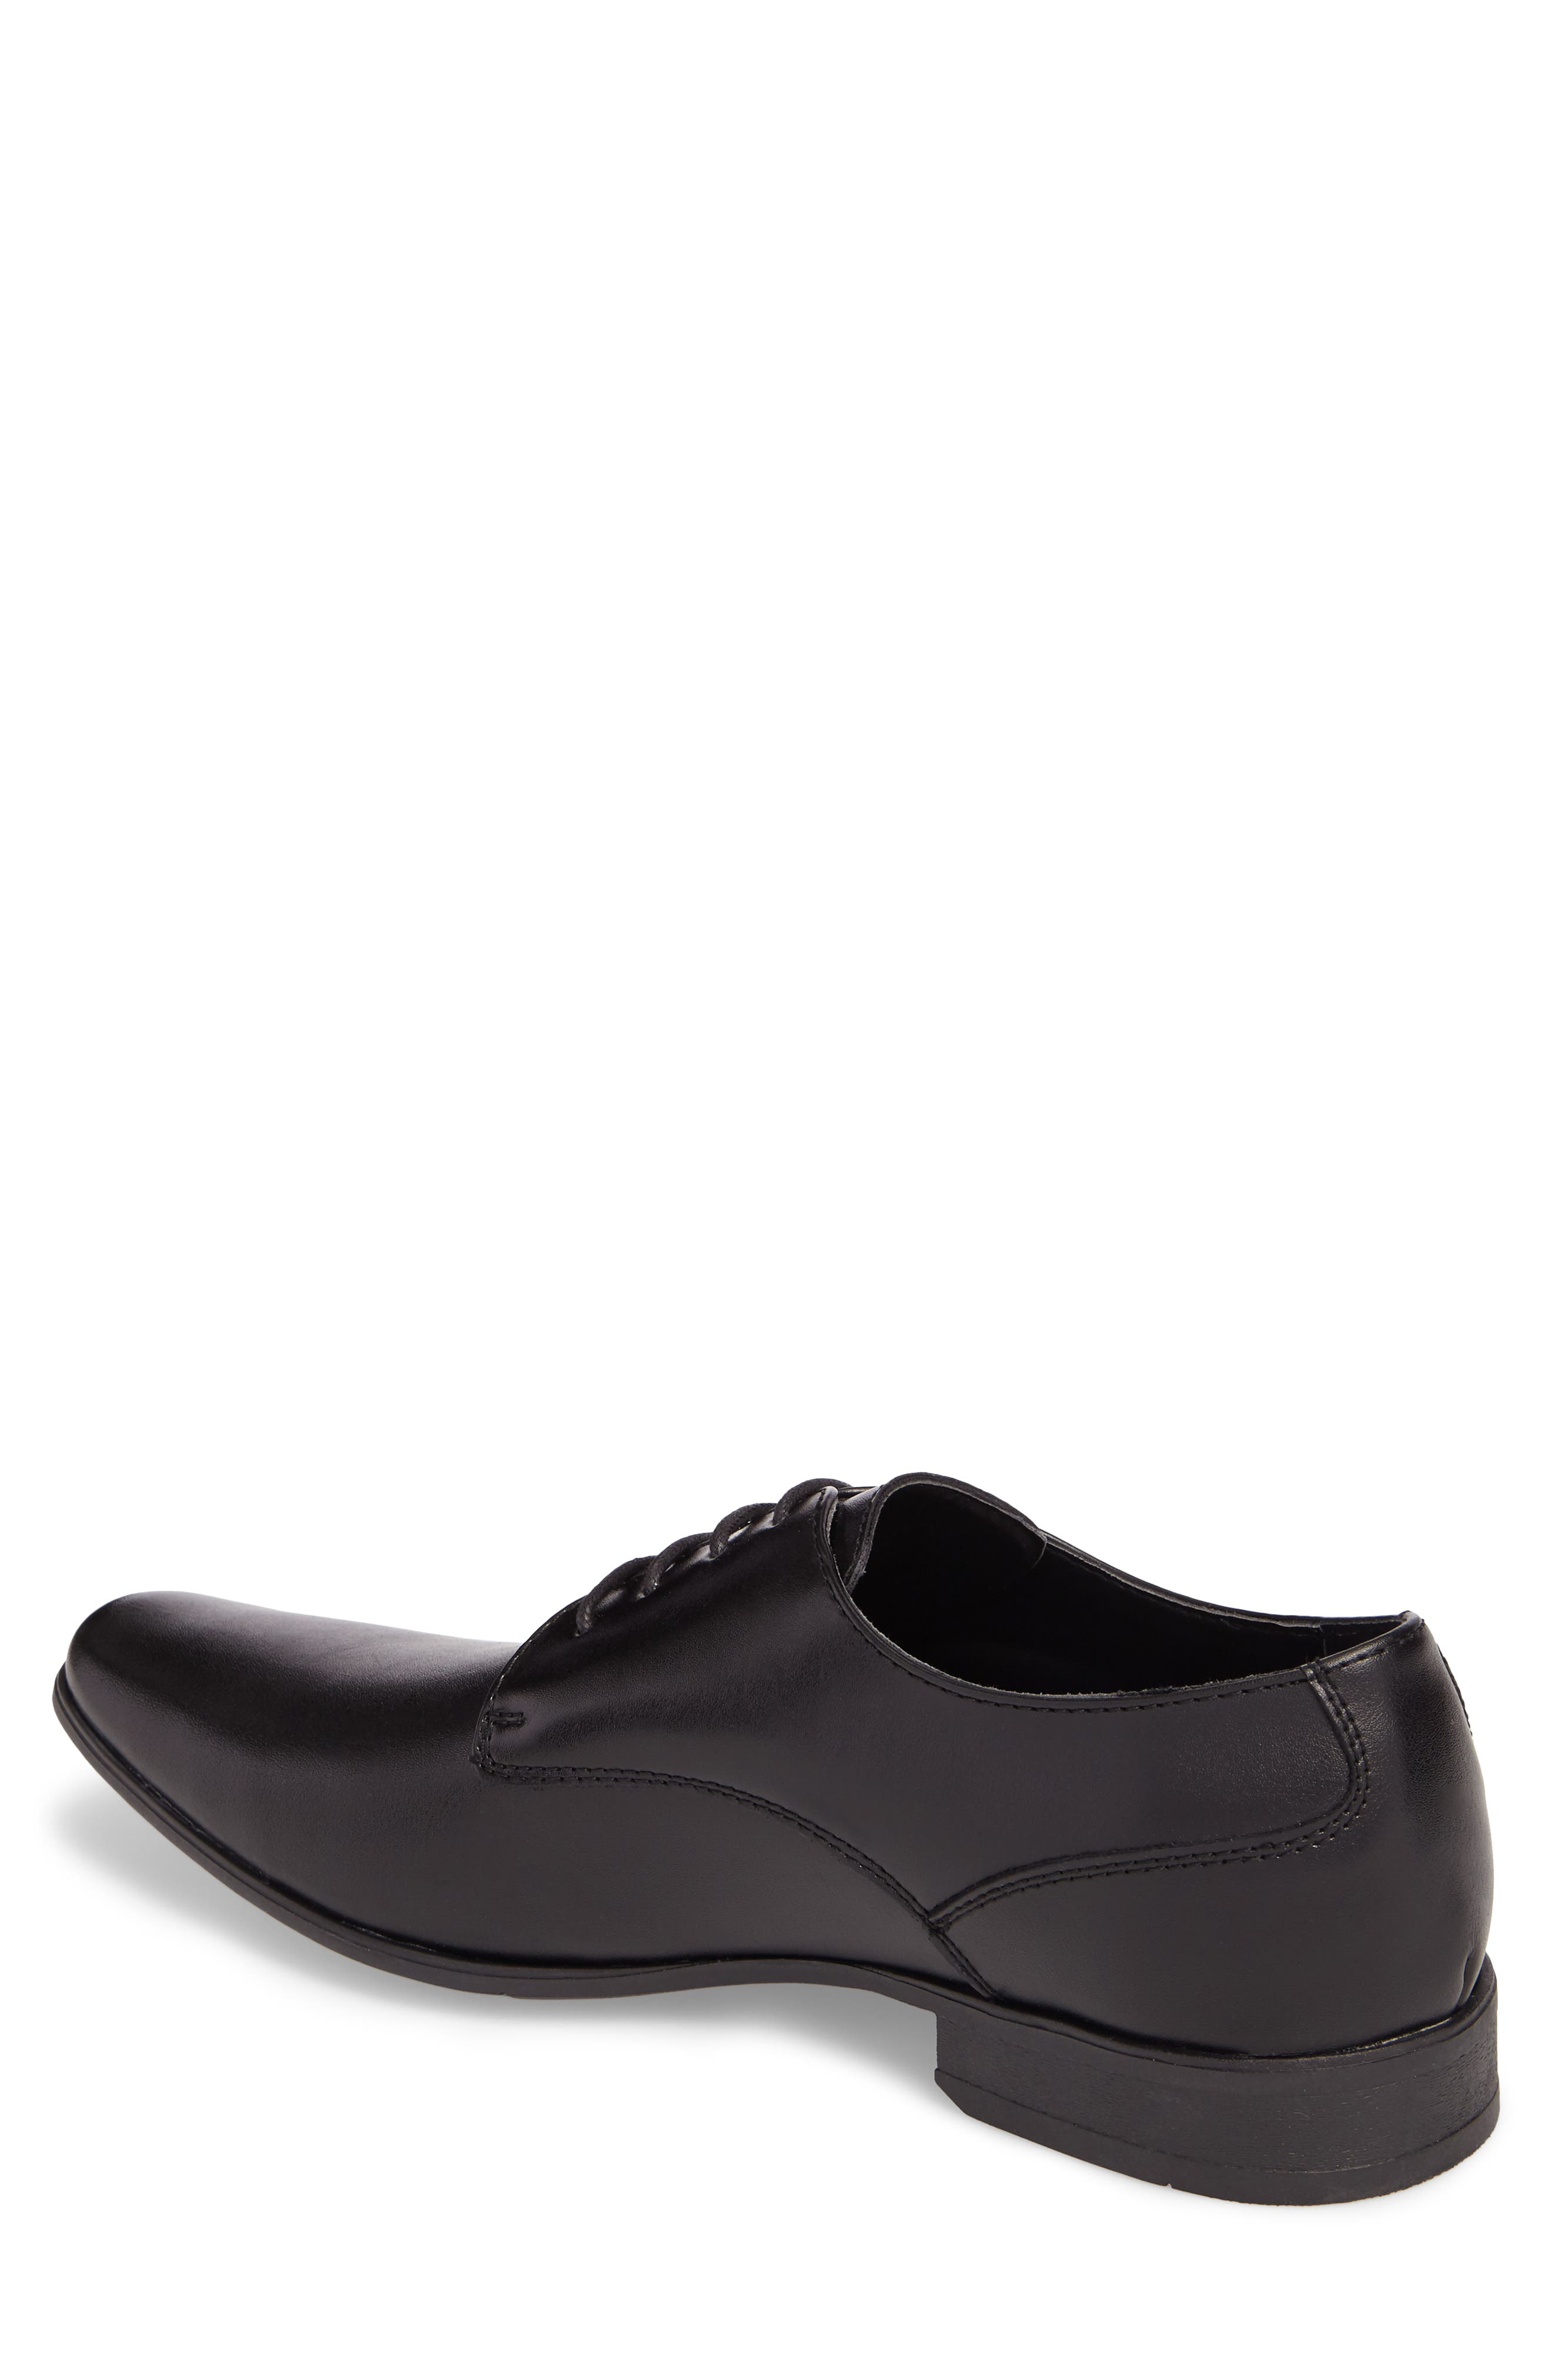 Alternate Image 2  - Calvin Klein Brodie Plain Toe Derby (Men)